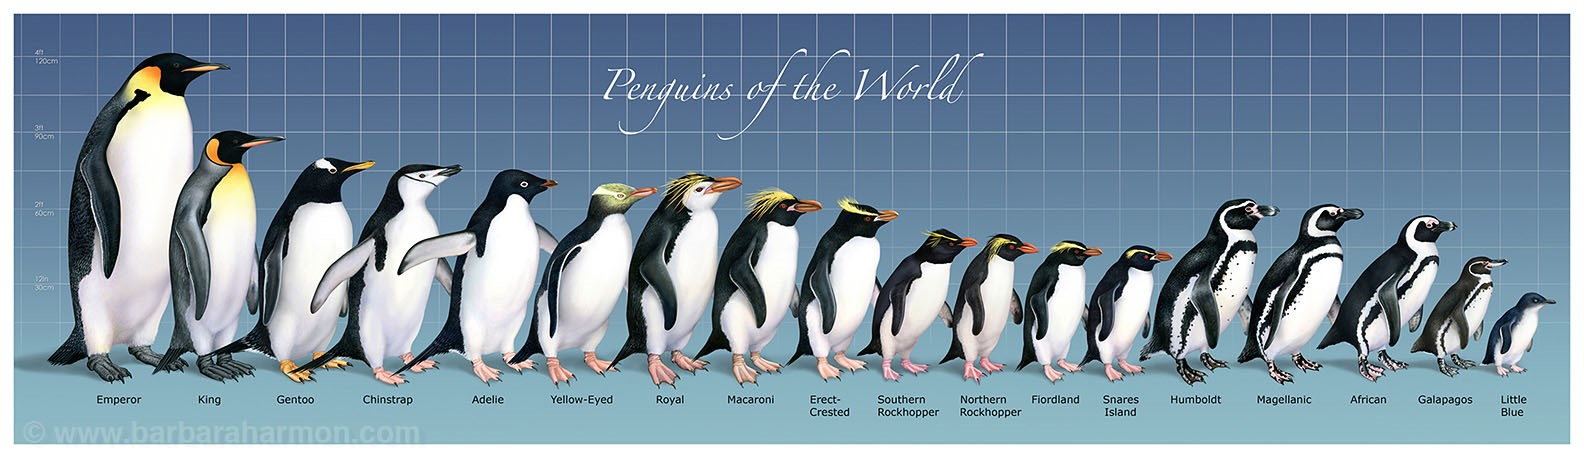 Galápagos penguins are the second smallest penguin in the world. This image (which you can click on to enlarge) was created by  Barbara Harmon , a biological and medical illustrator. Barbara has given her permission for this piece to appear here.